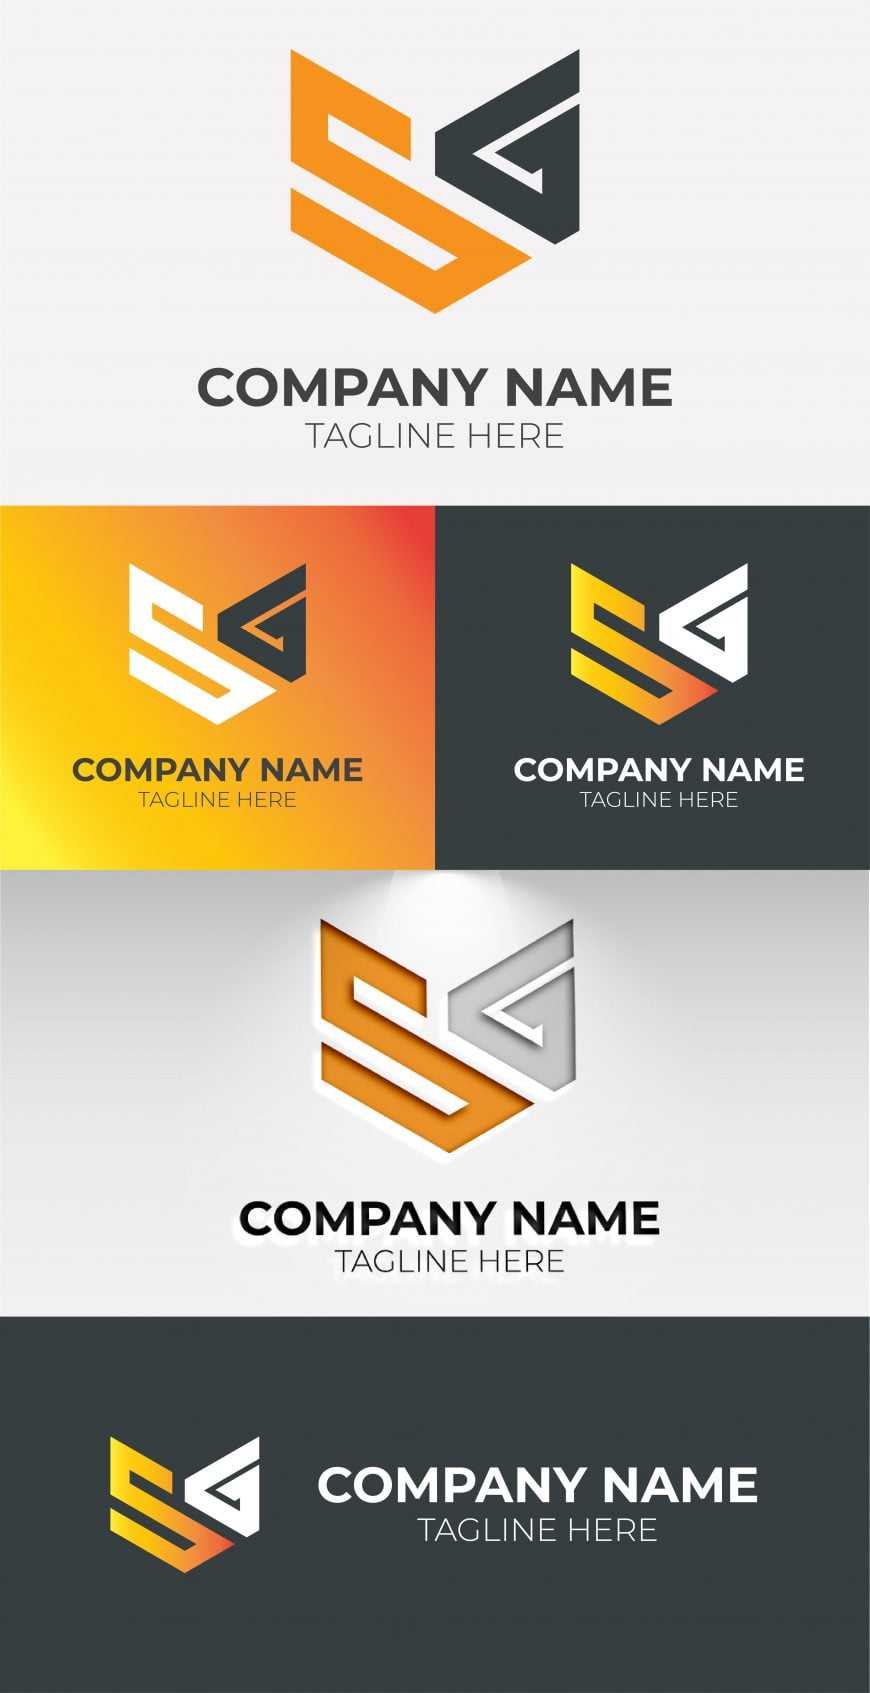 SG-LETTER-LOGO-FREE-VECTOR-scaled